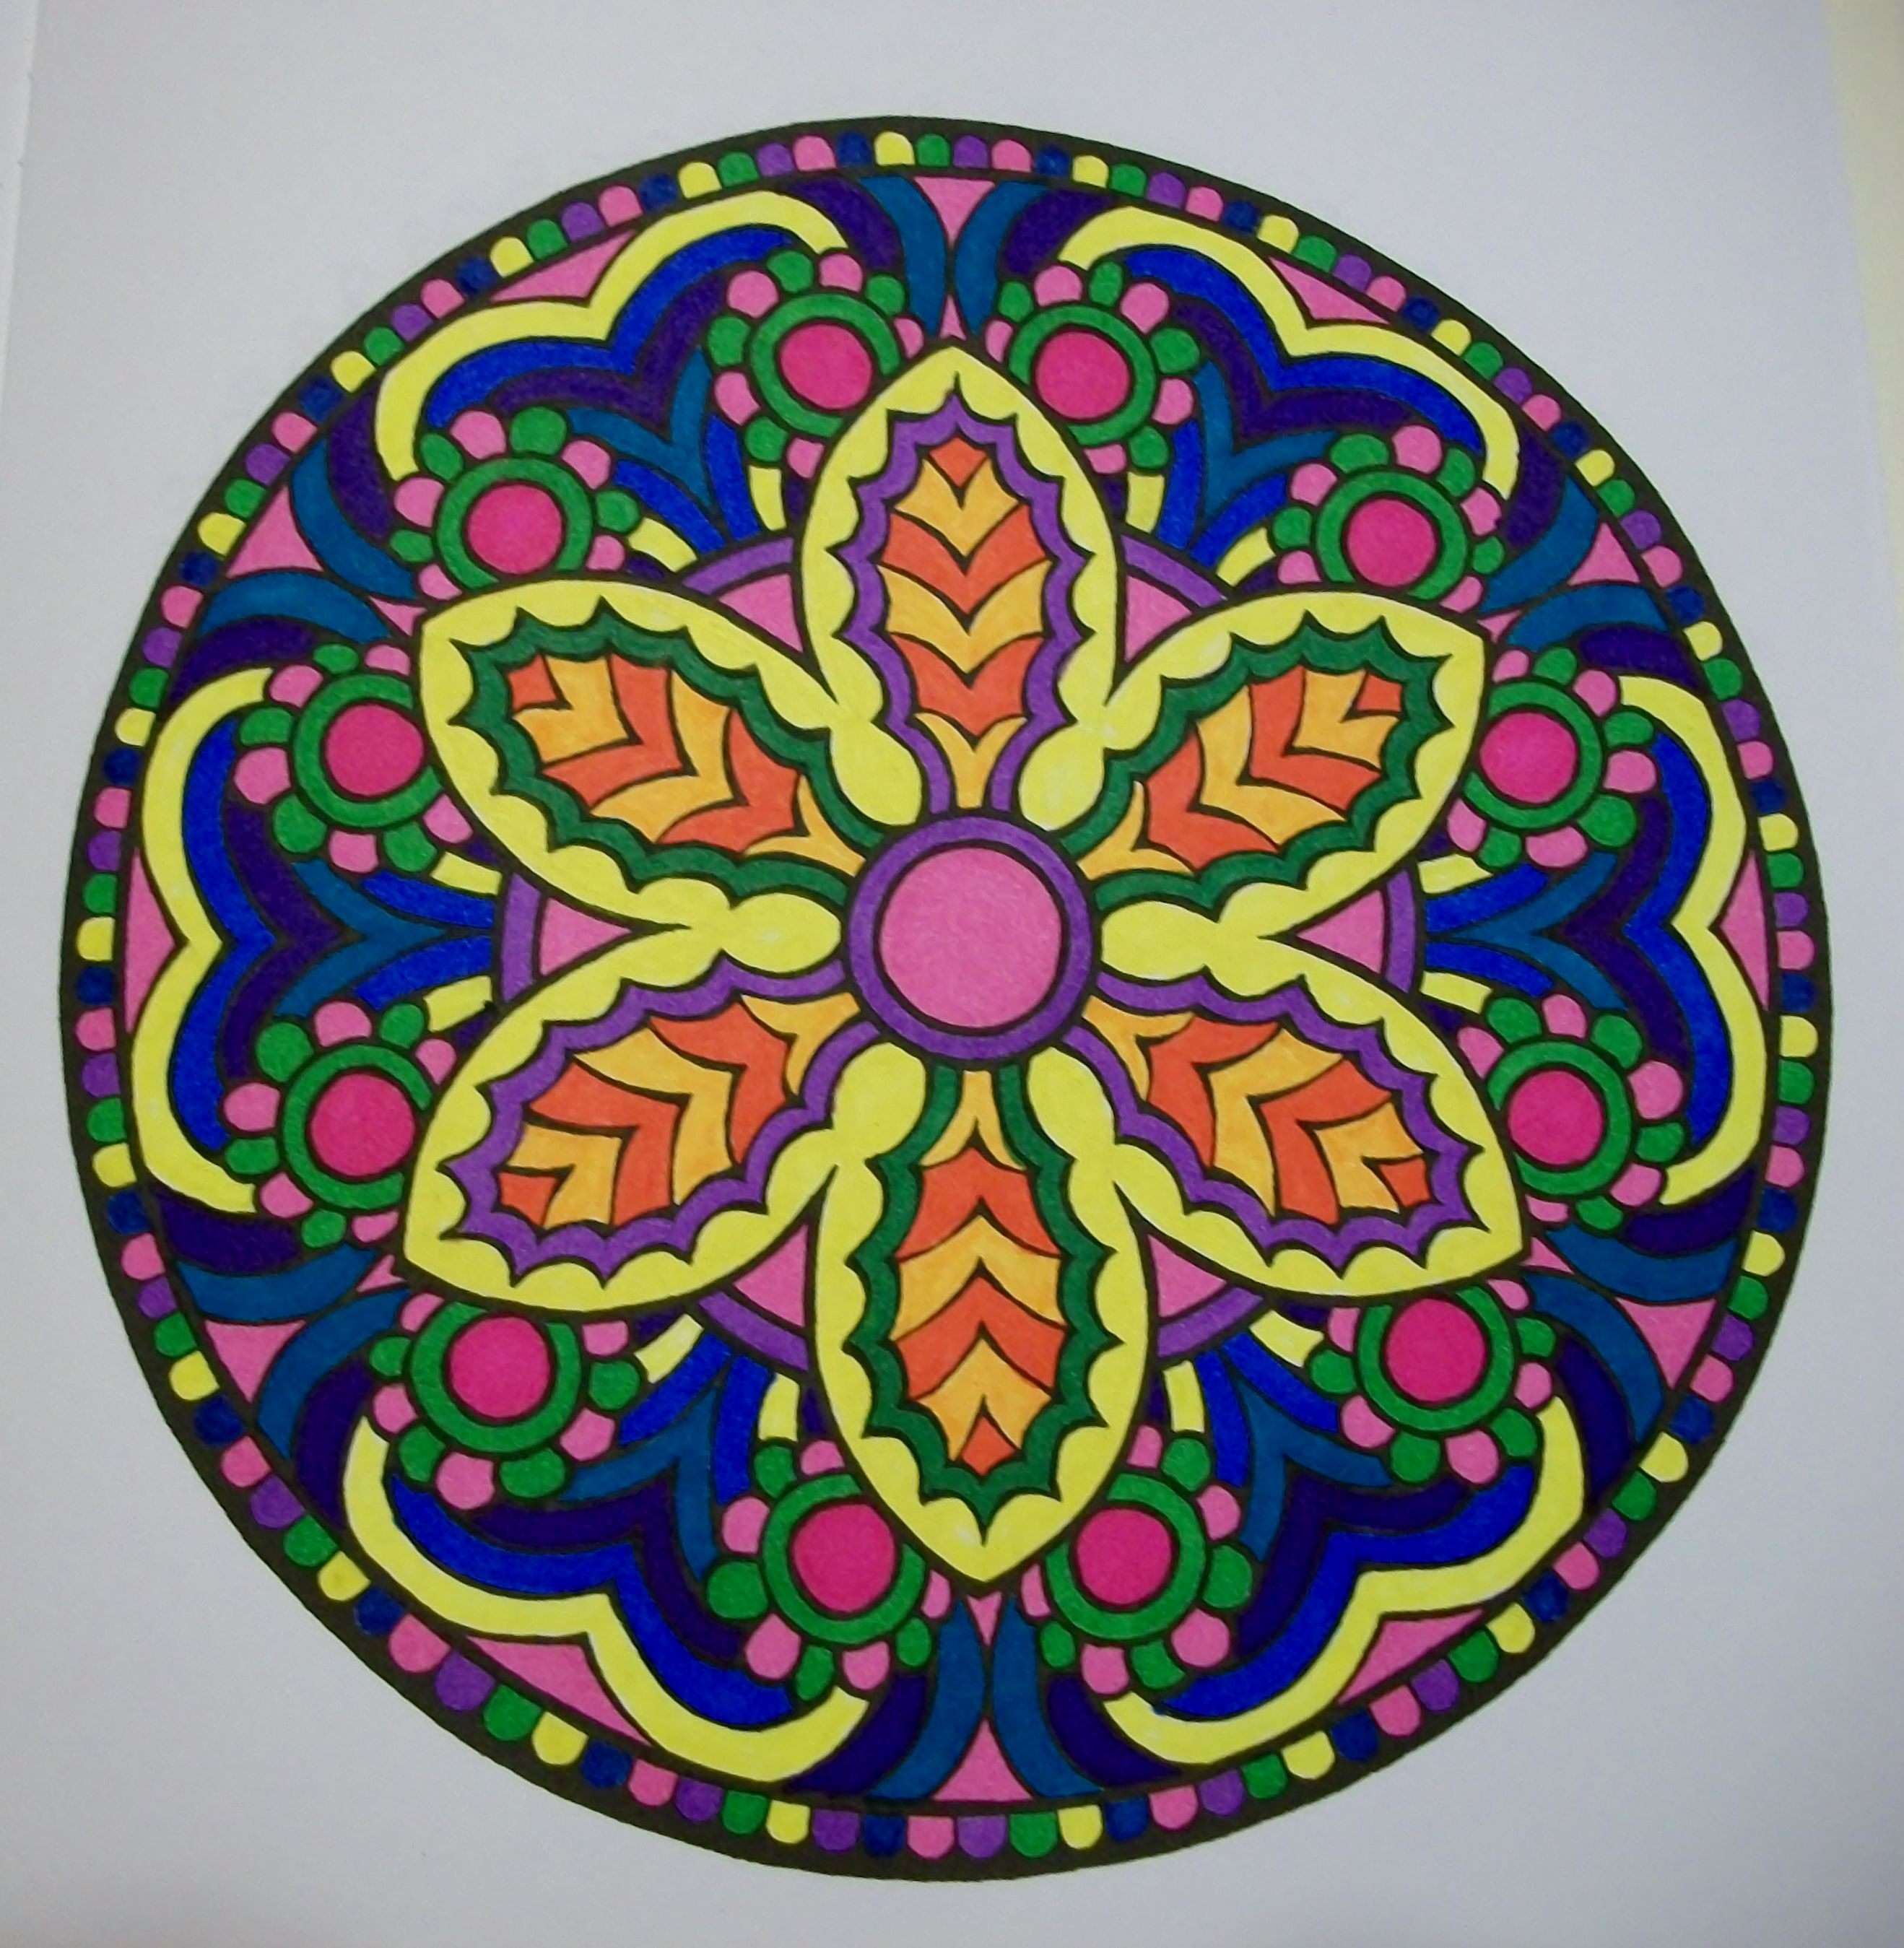 Mandala coloring pages amazon - Used Bic Fine Point Markers For This One Mystical Mandala Coloring Book Purchased From